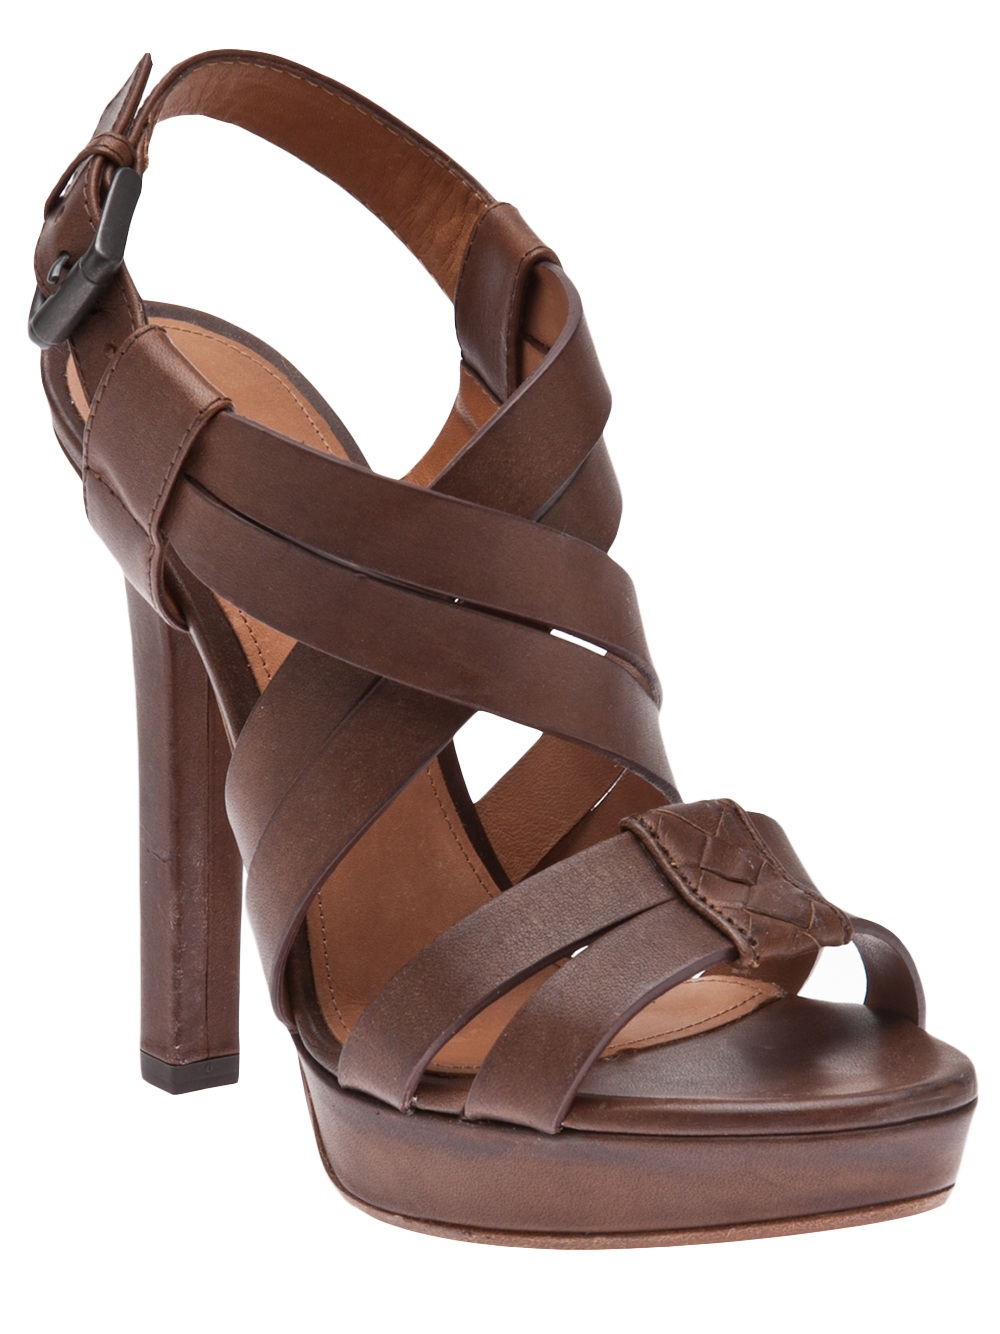 Lyst Bottega Veneta Strappy Sandal In Brown